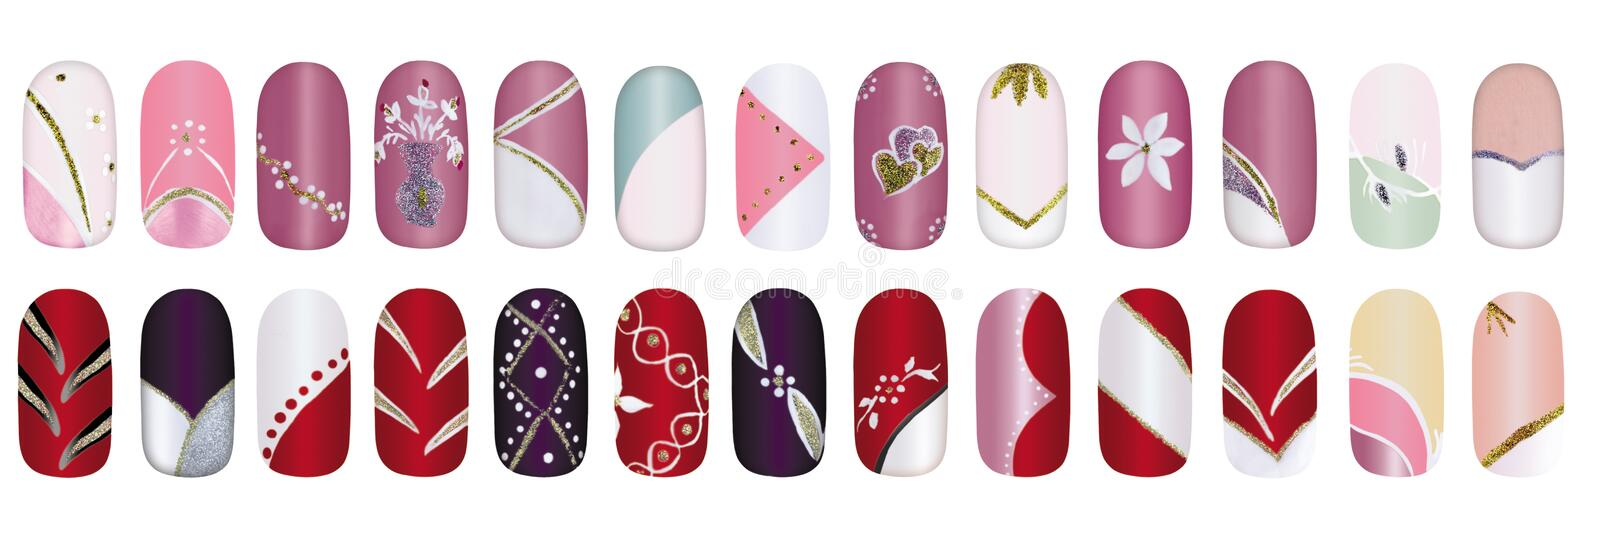 Vingernagels vector illustratie